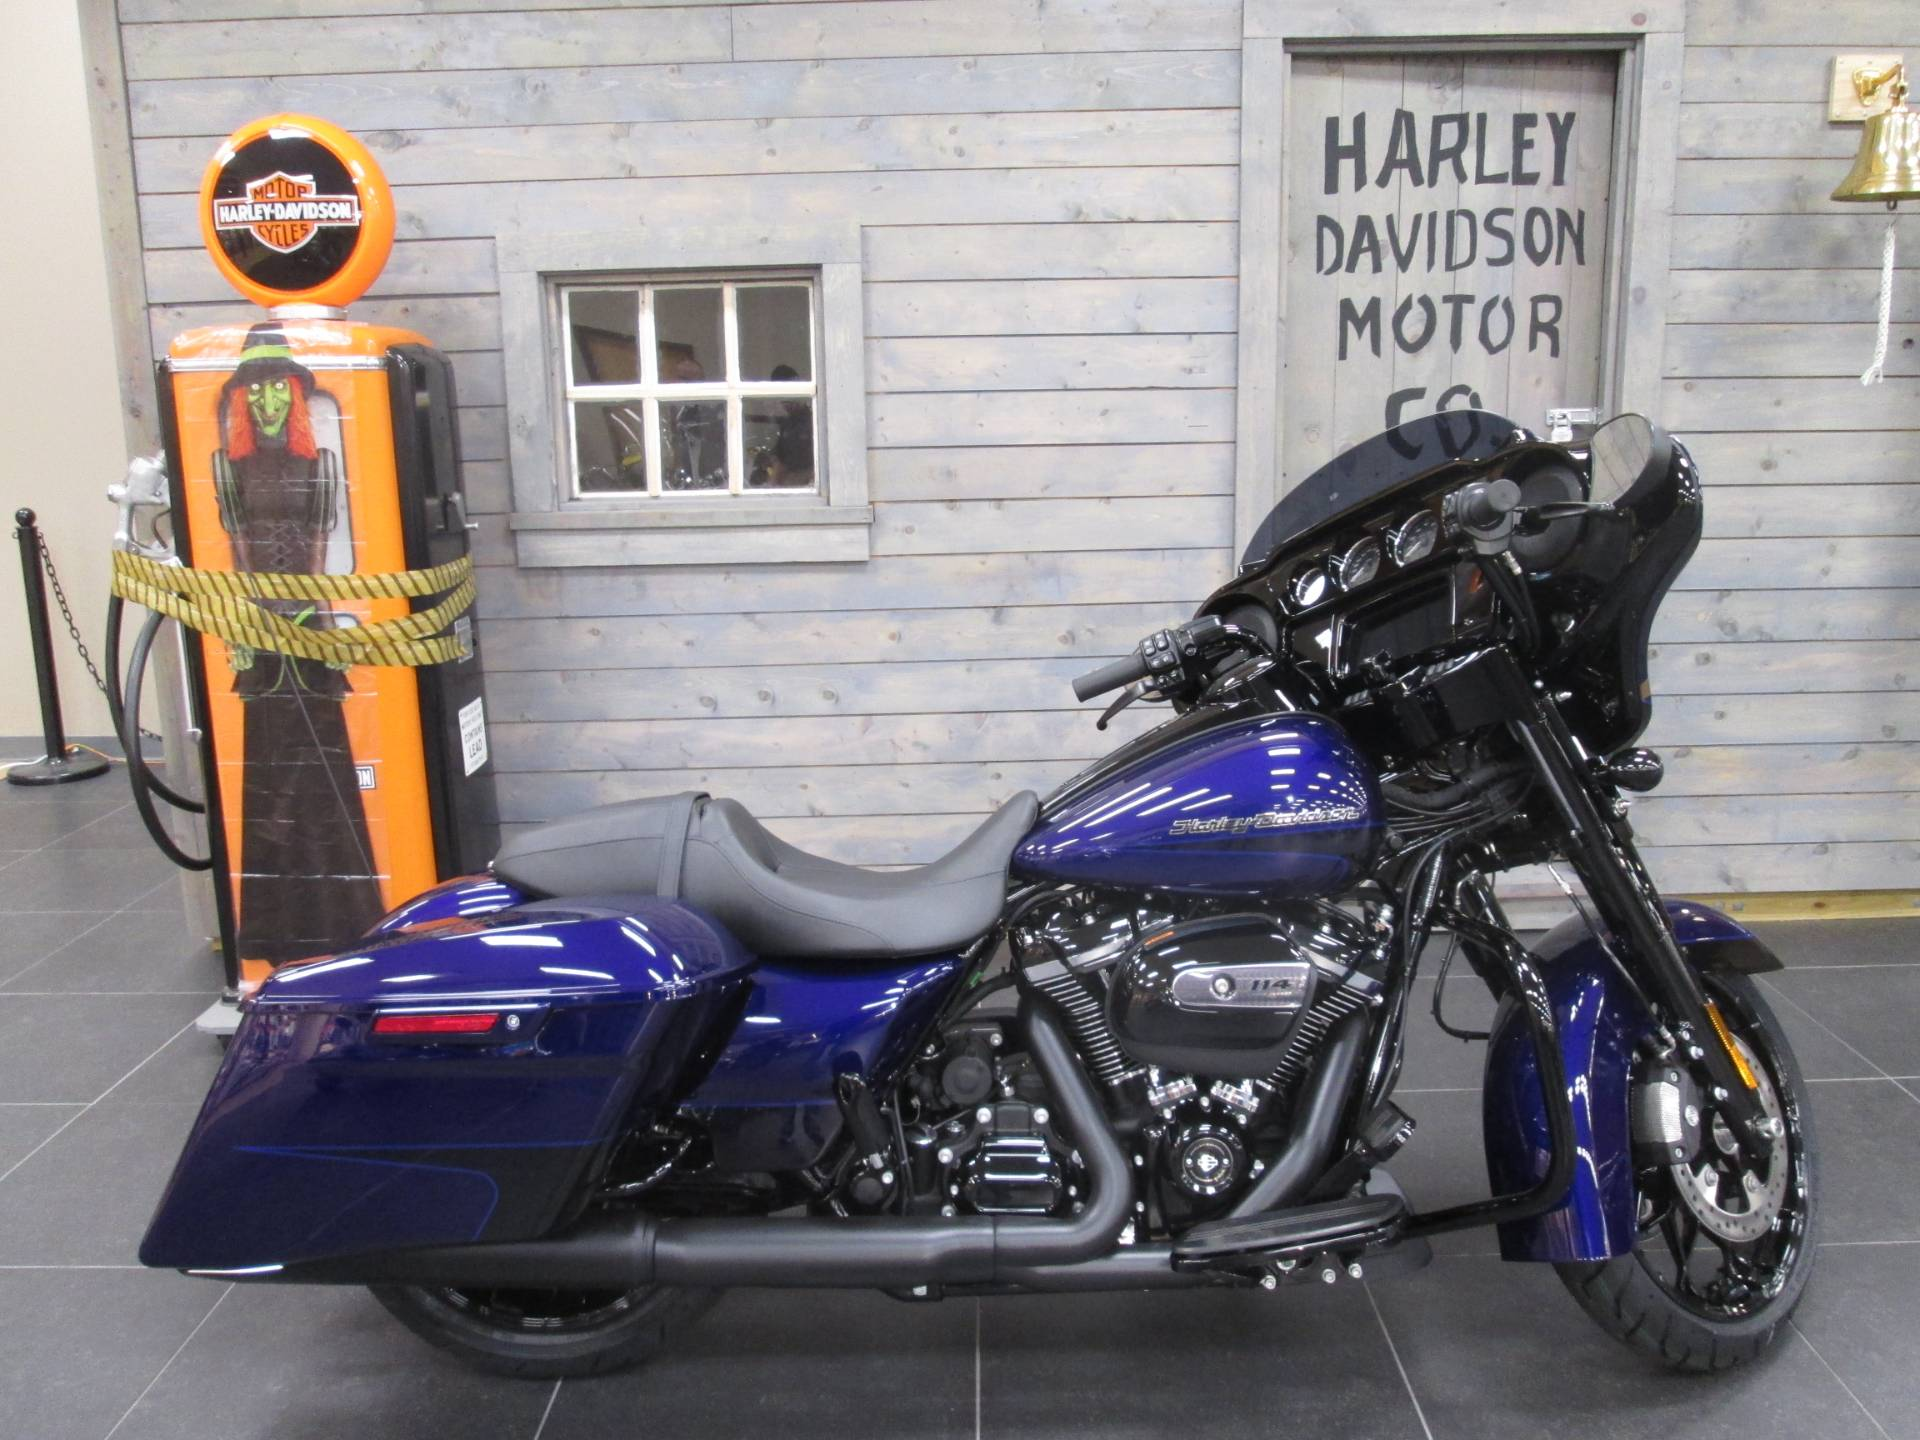 New 2020 Harley Davidson Street Glide Special Motorcycles In